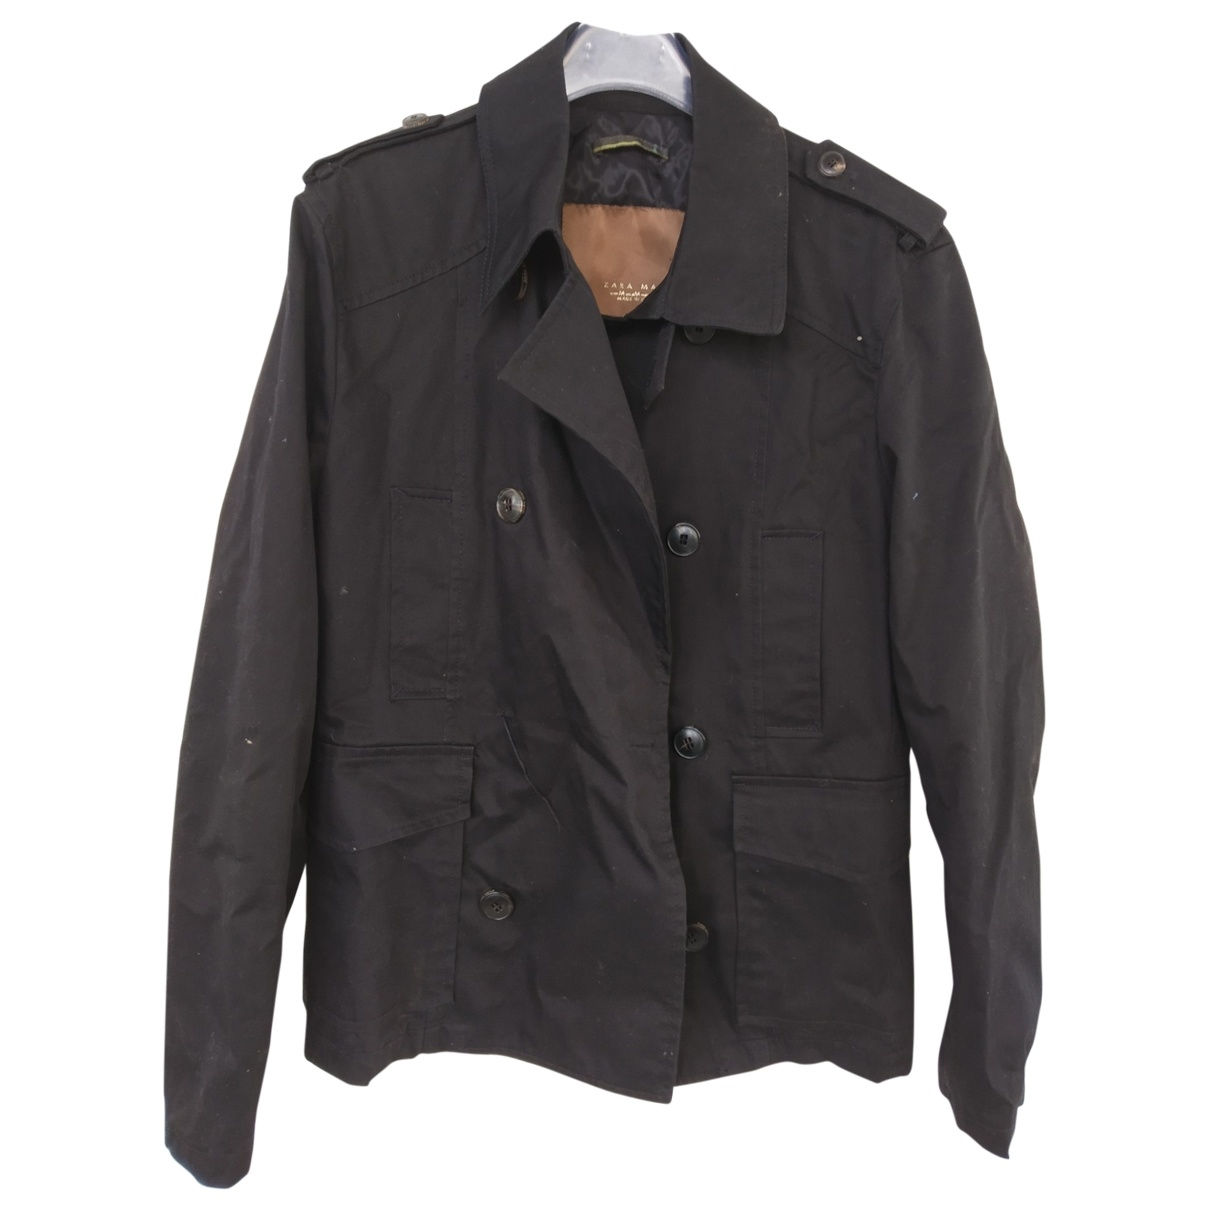 Zara \N Black Cotton jacket  for Men M International